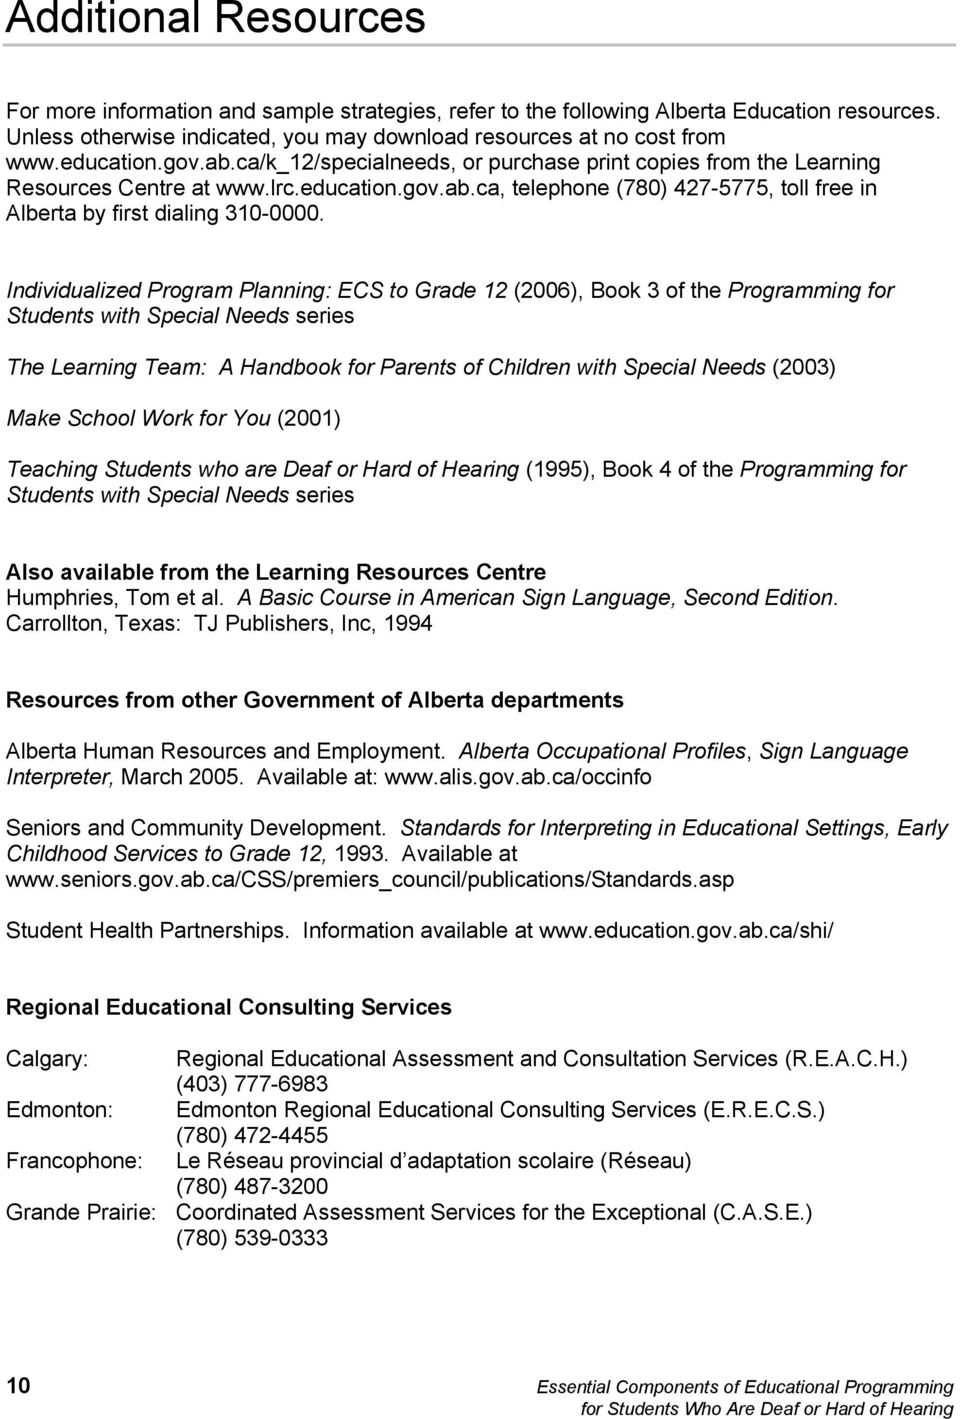 Individualized Program Planning: ECS to Grade 12 (2006), Book 3 of the Programming for Students with Special Needs series The Learning Team: A Handbook for Parents of Children with Special Needs